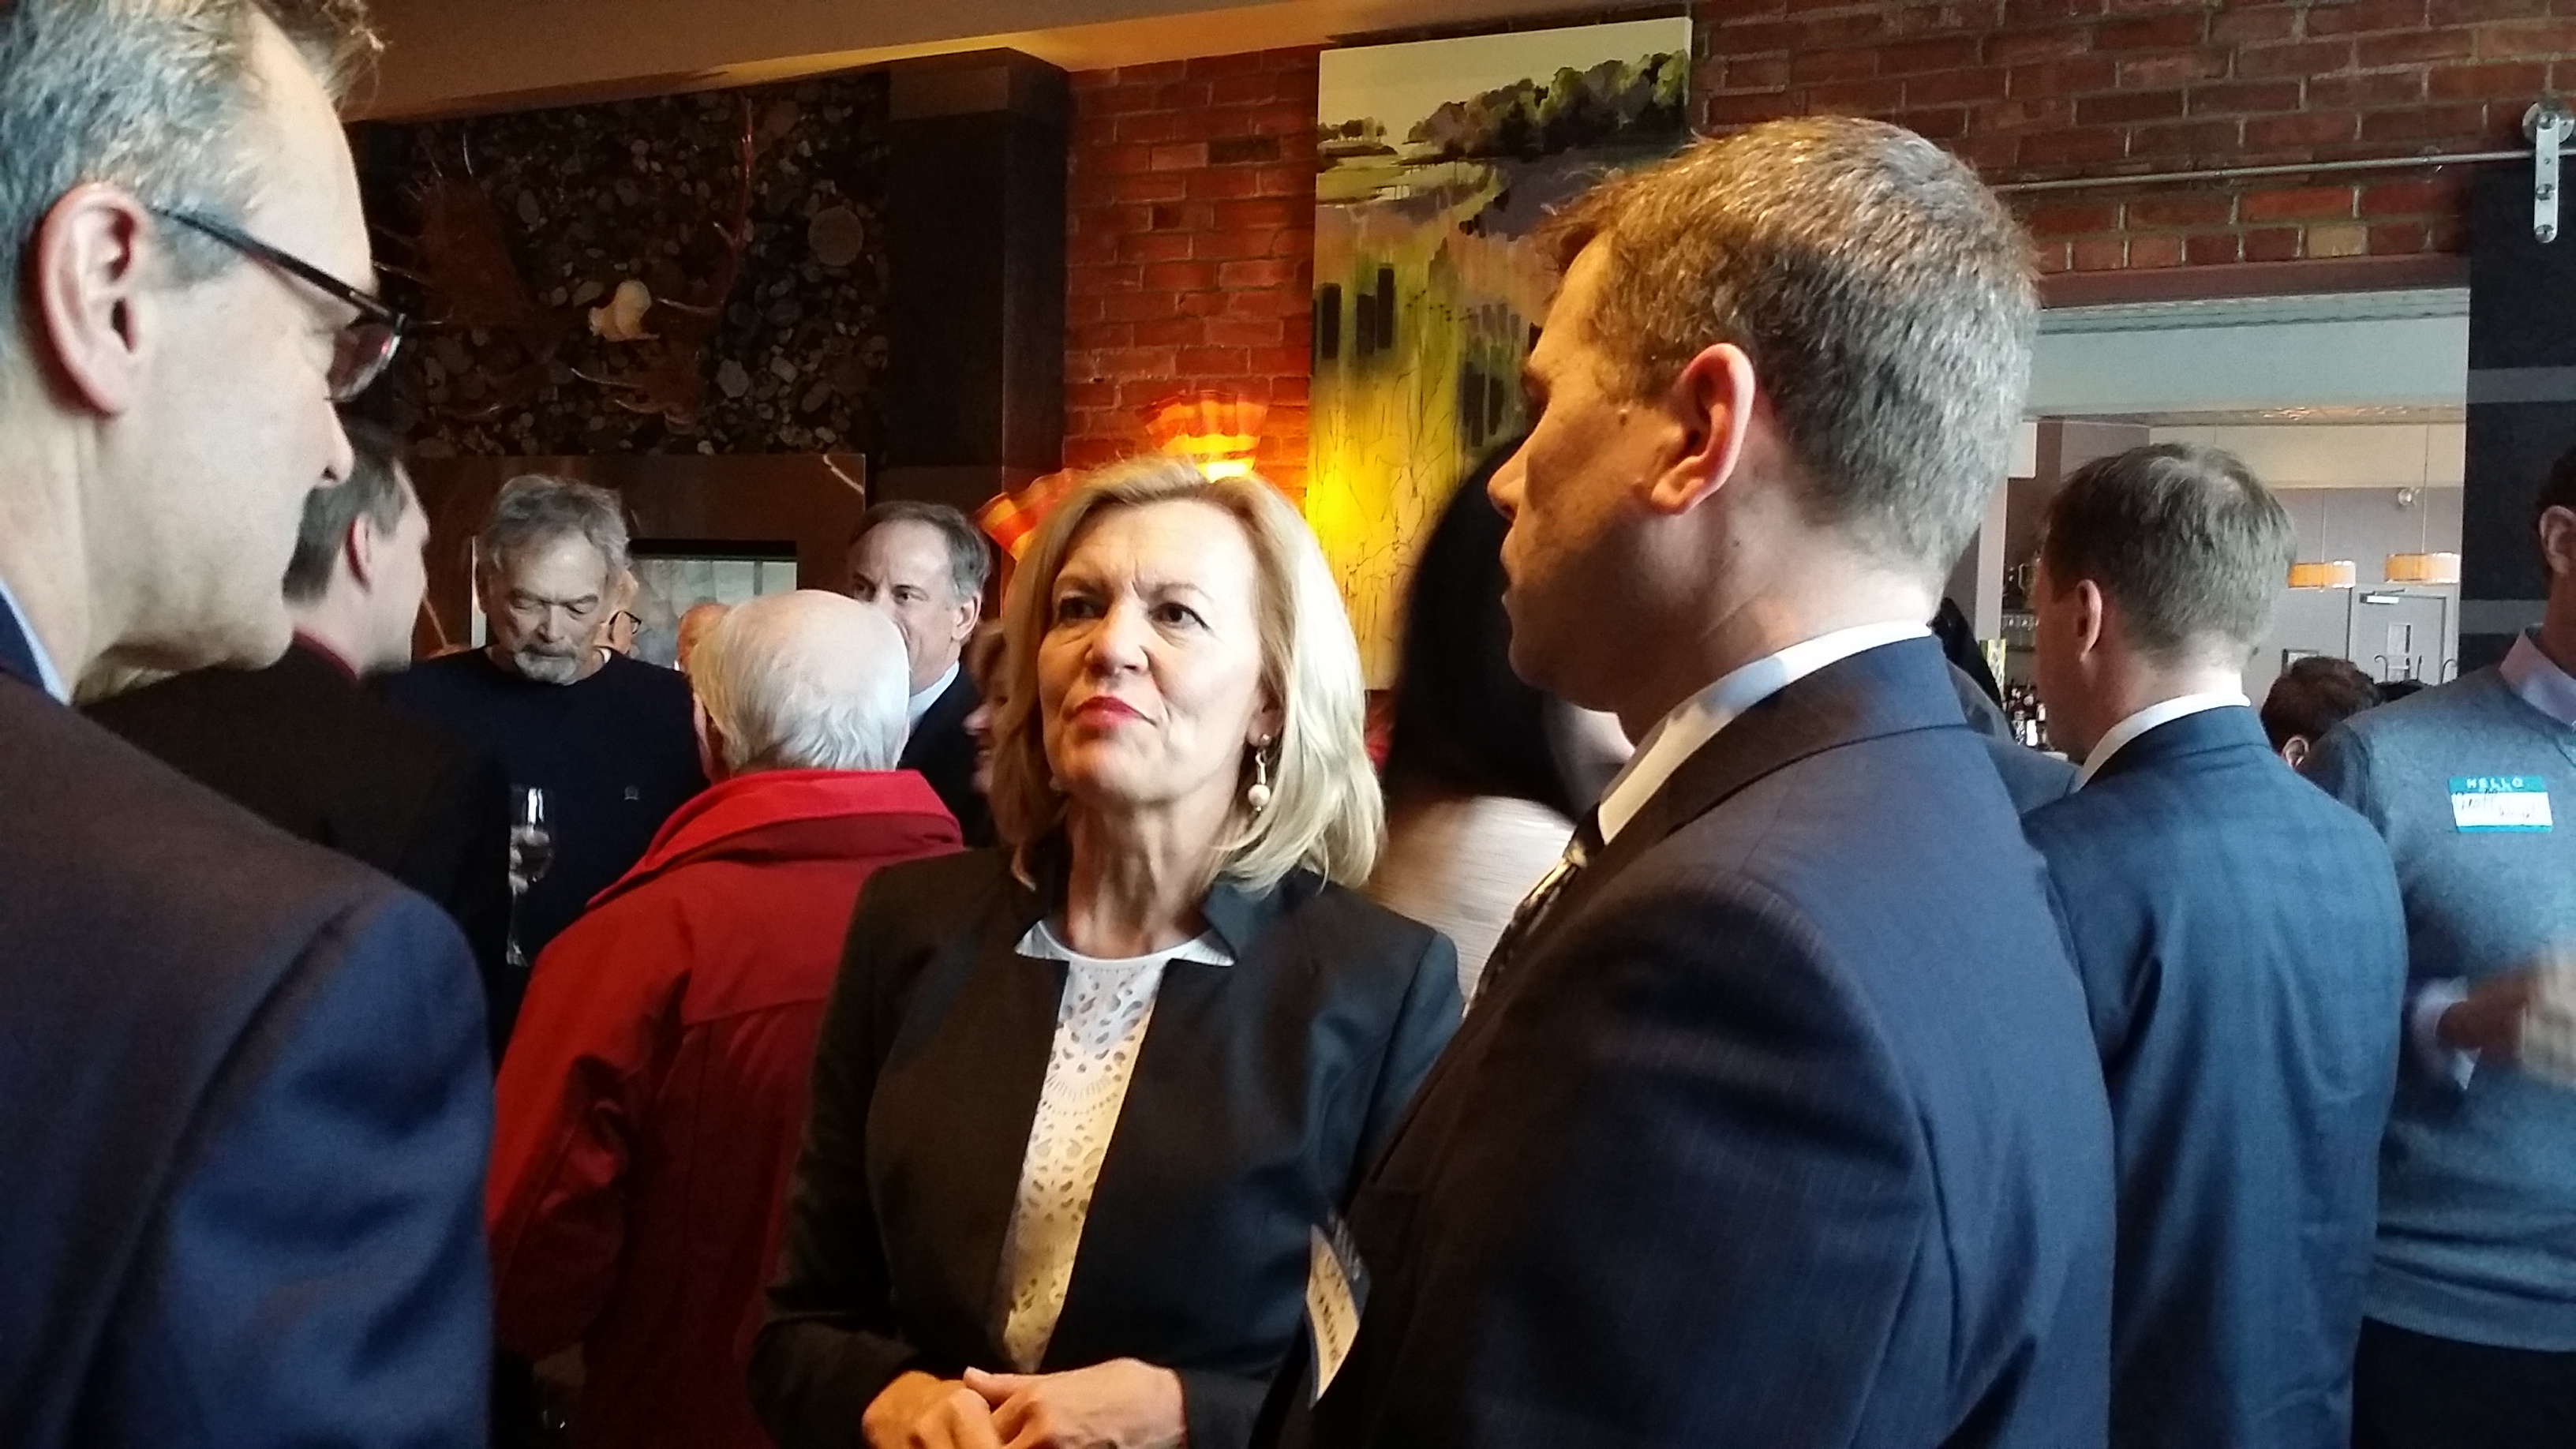 PC leadership candidate Christine Elliott talks with supporters at the Chatham Retro Suites on February 17, 2015. (Photo by Jake Kislinsky)